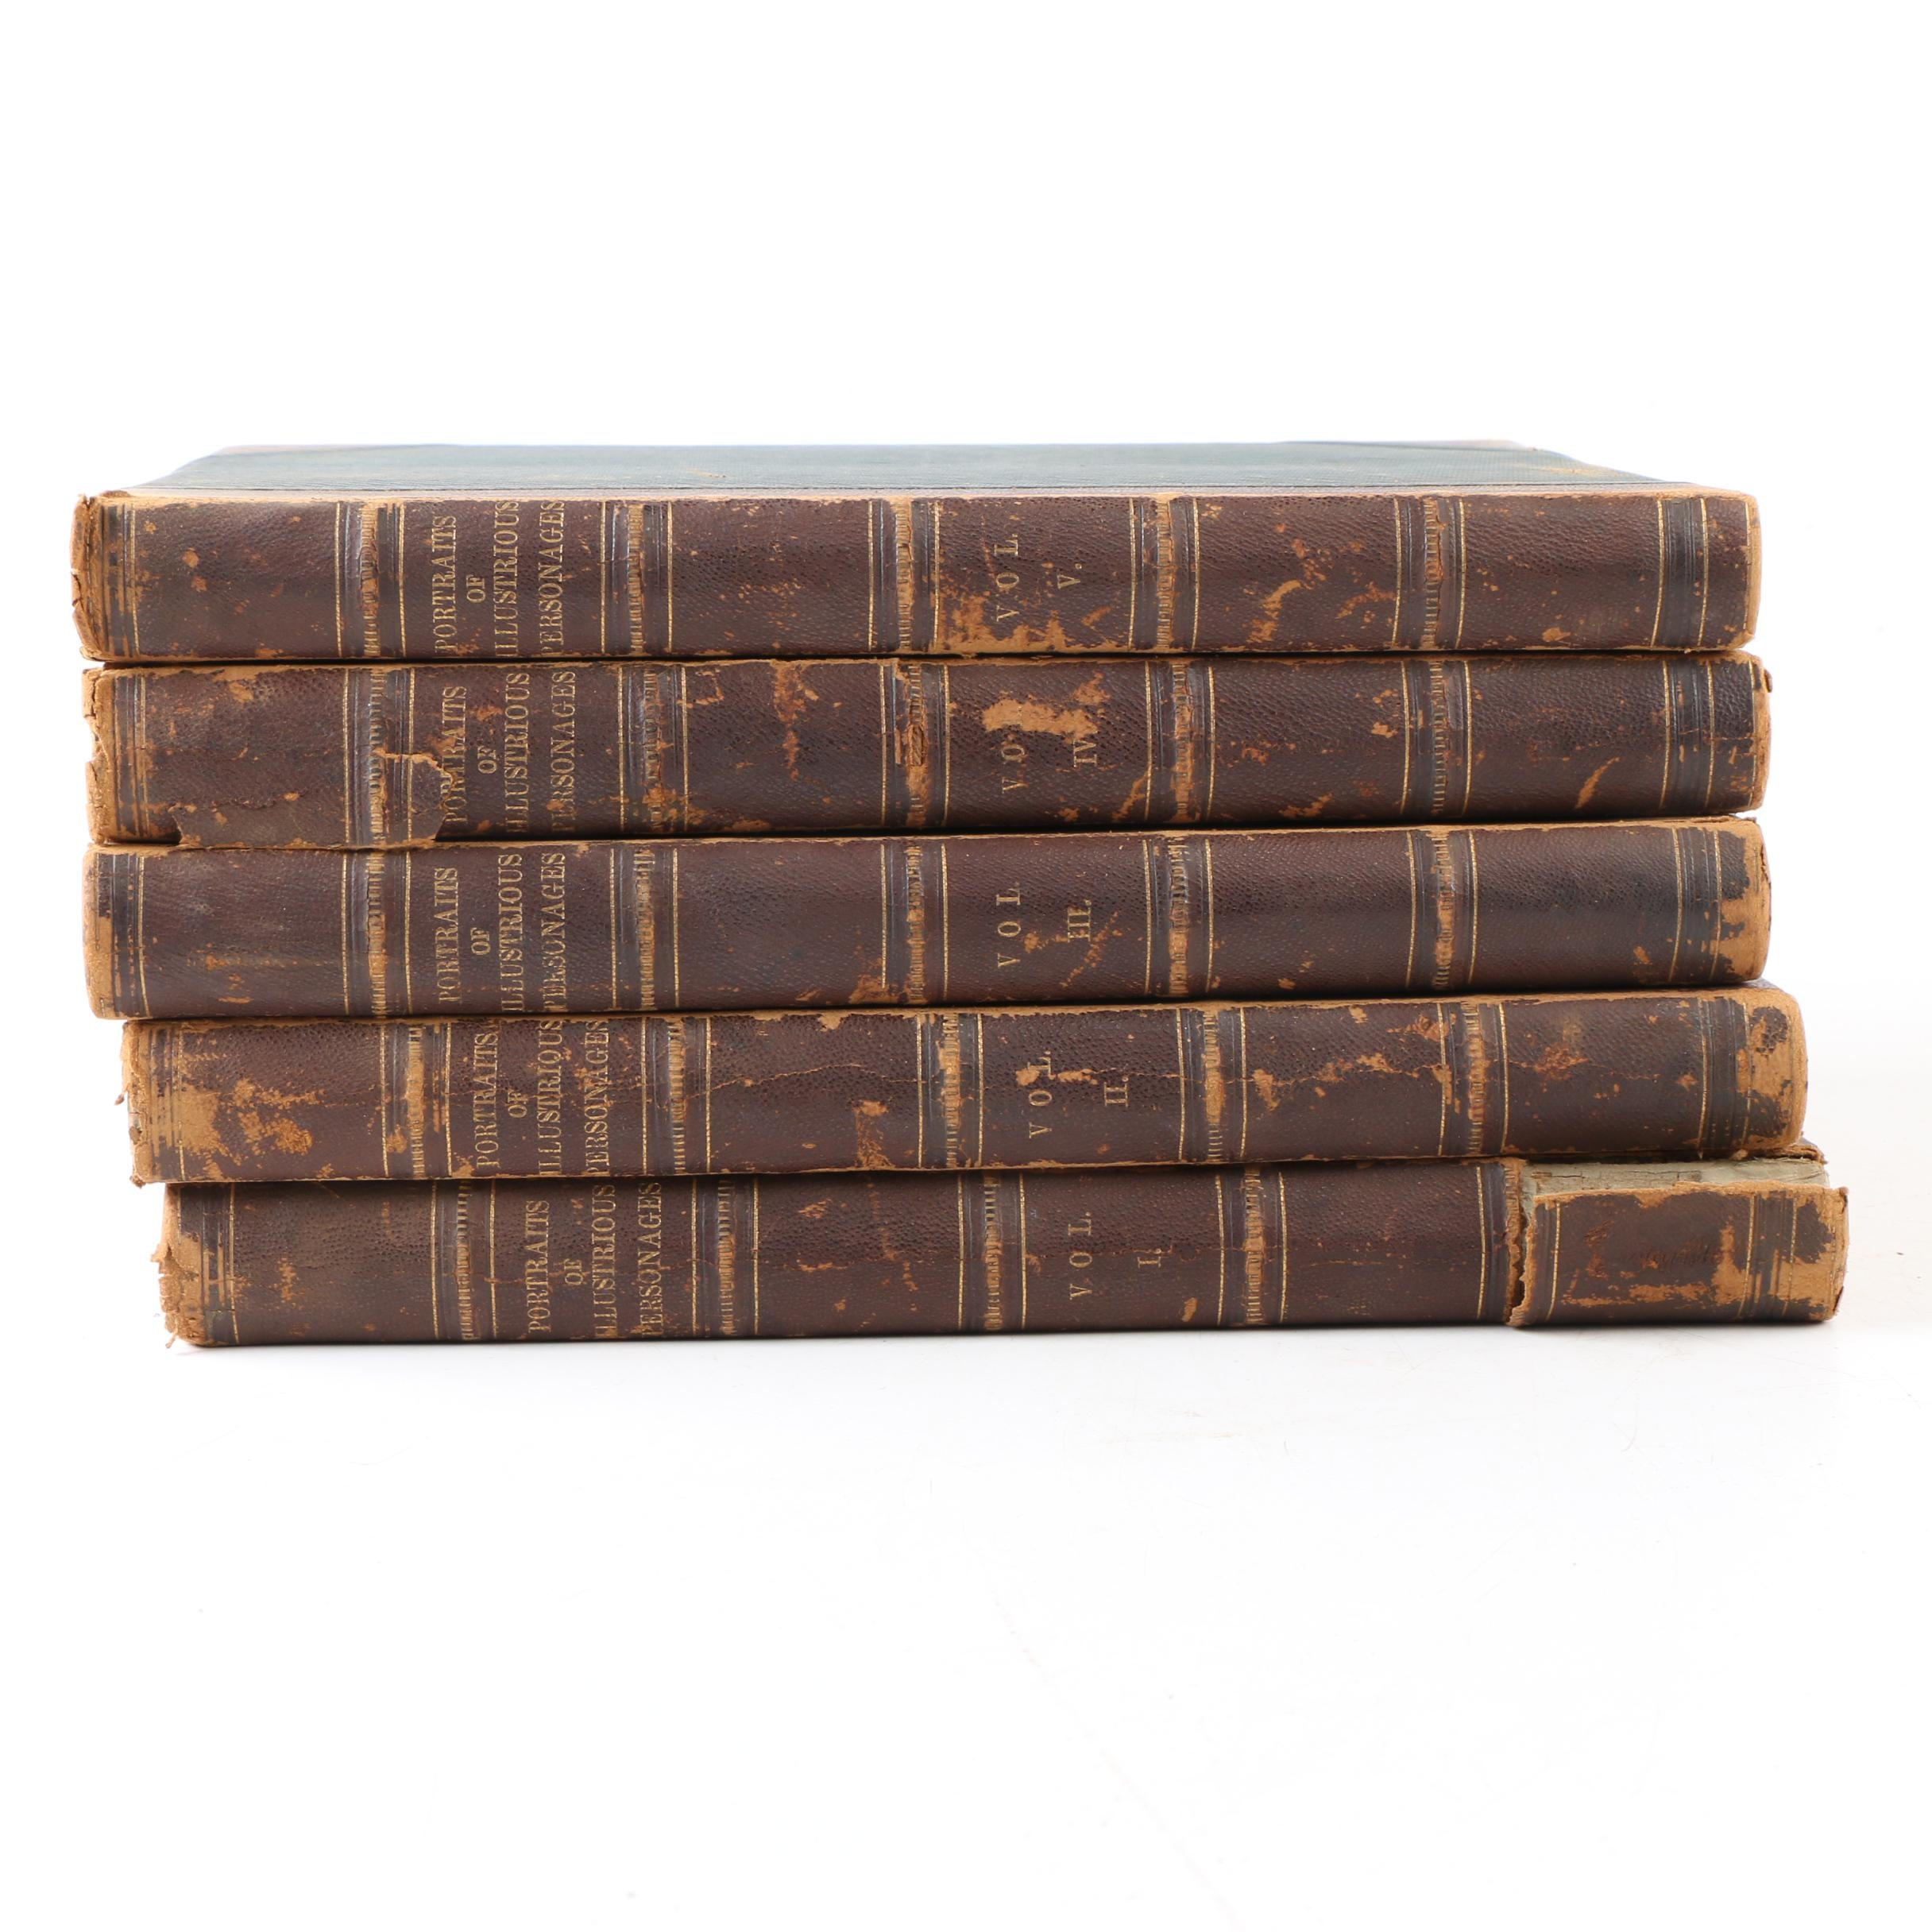 """Mid 19th Century Five Volumes of """"Portraits of Illustrious Personages"""""""